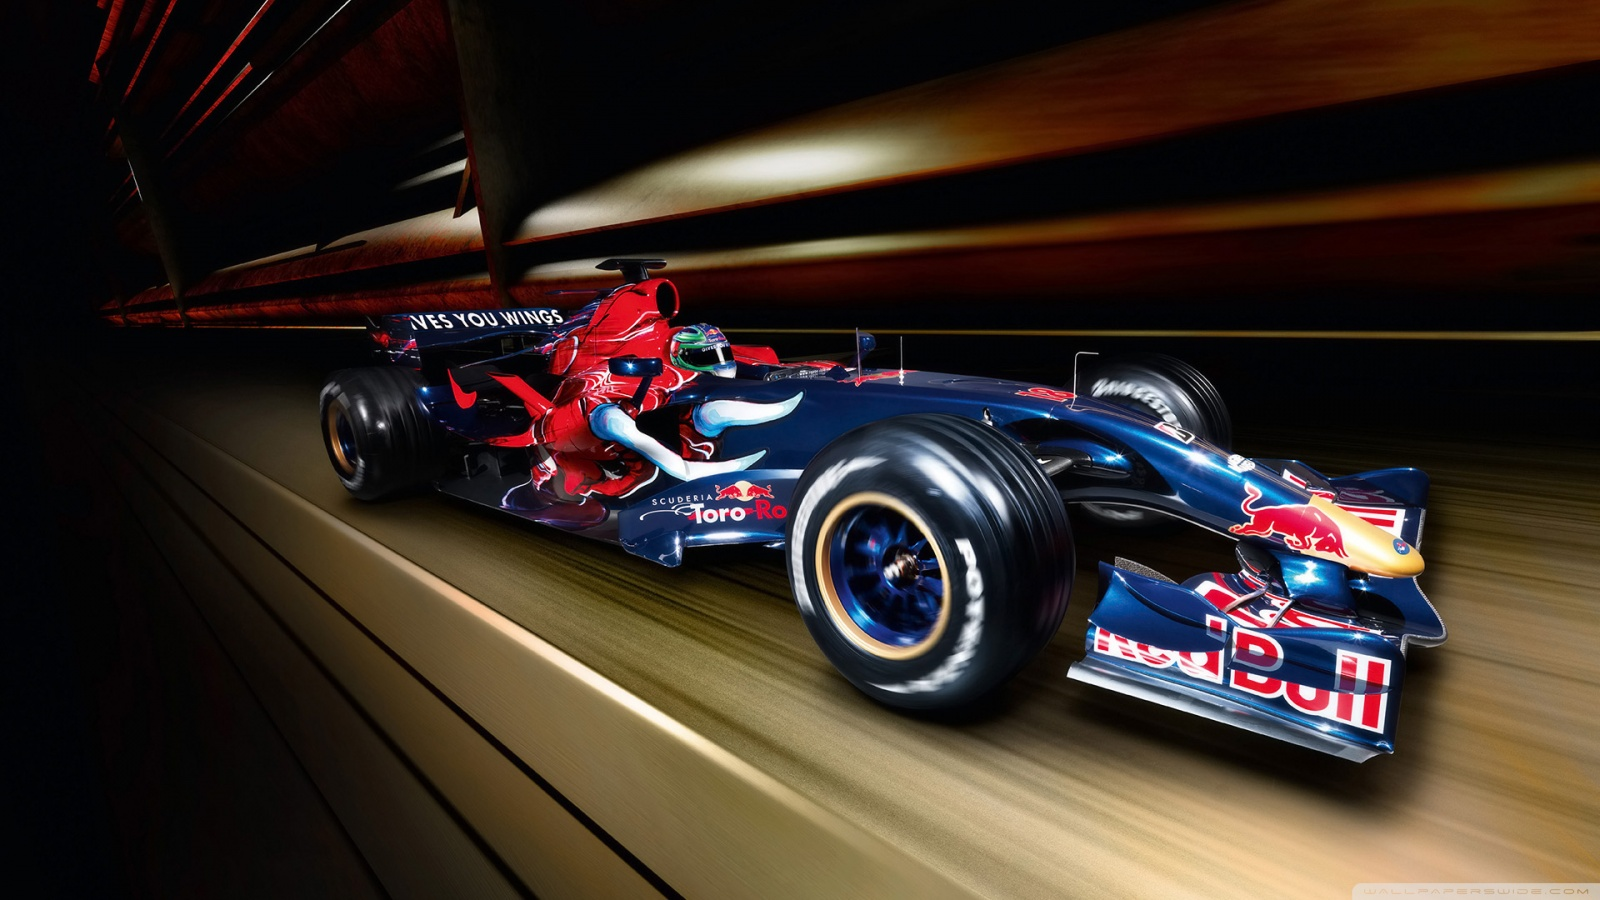 Formula 1 Hd: Formule 1 Wallpapers